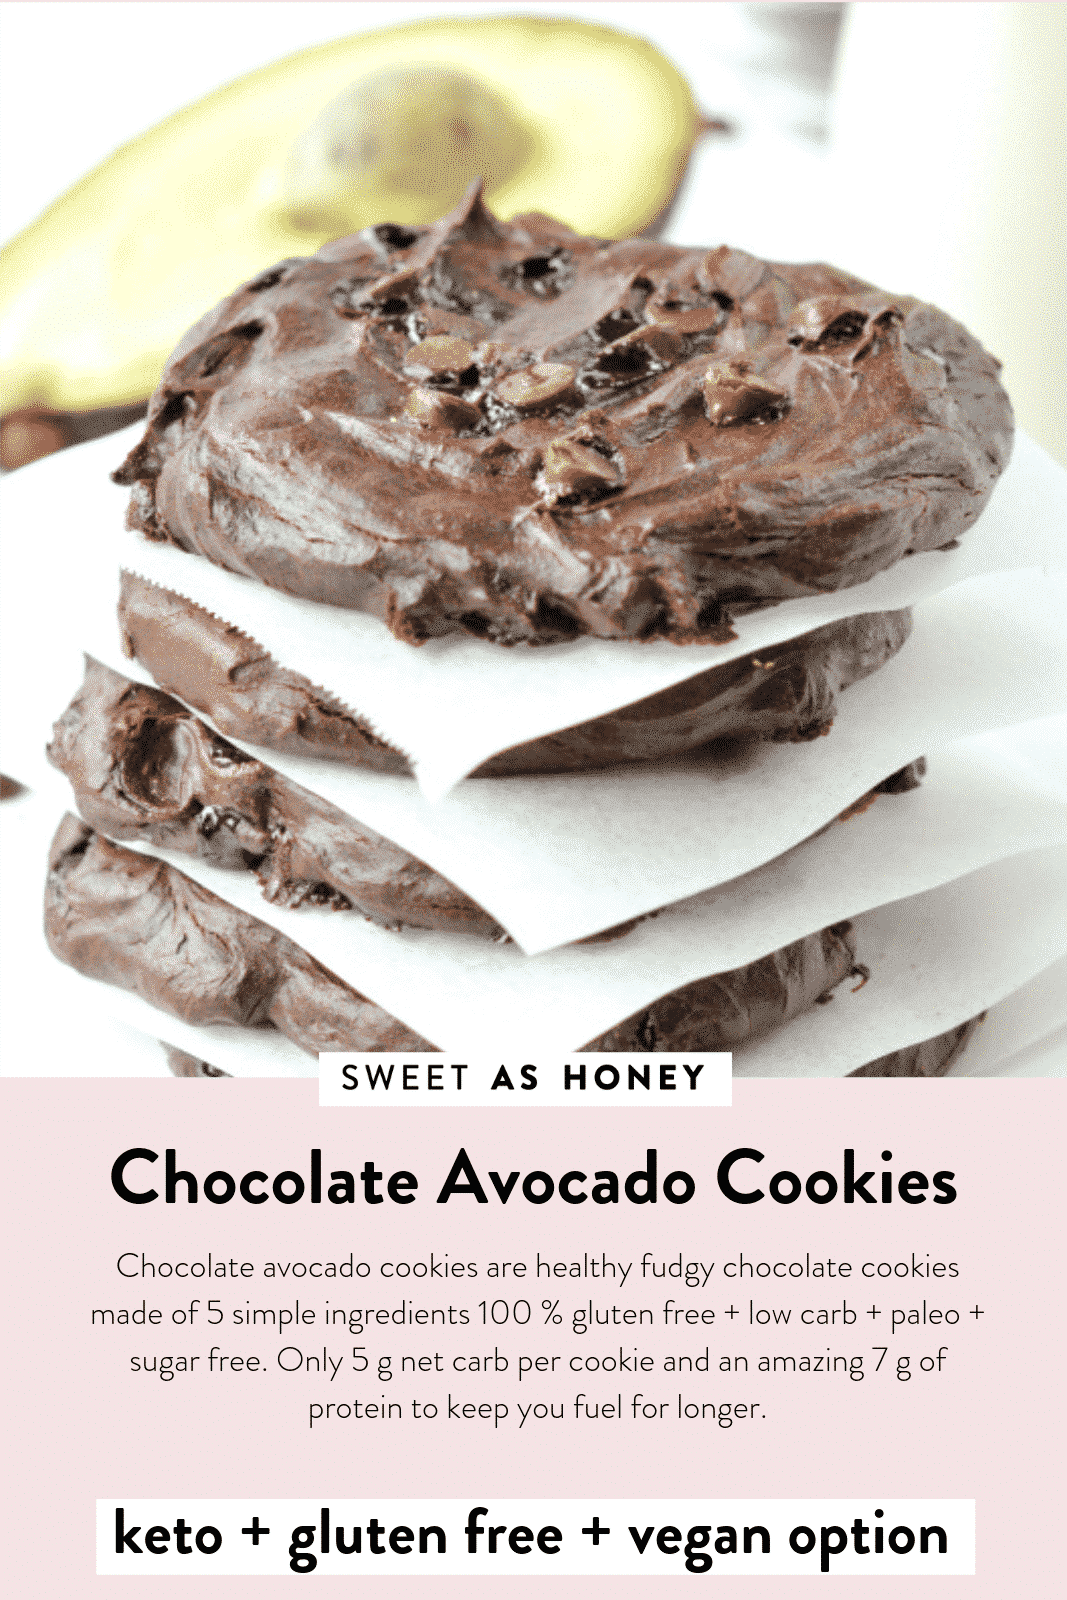 Chocolate Avocado Cookies Keto